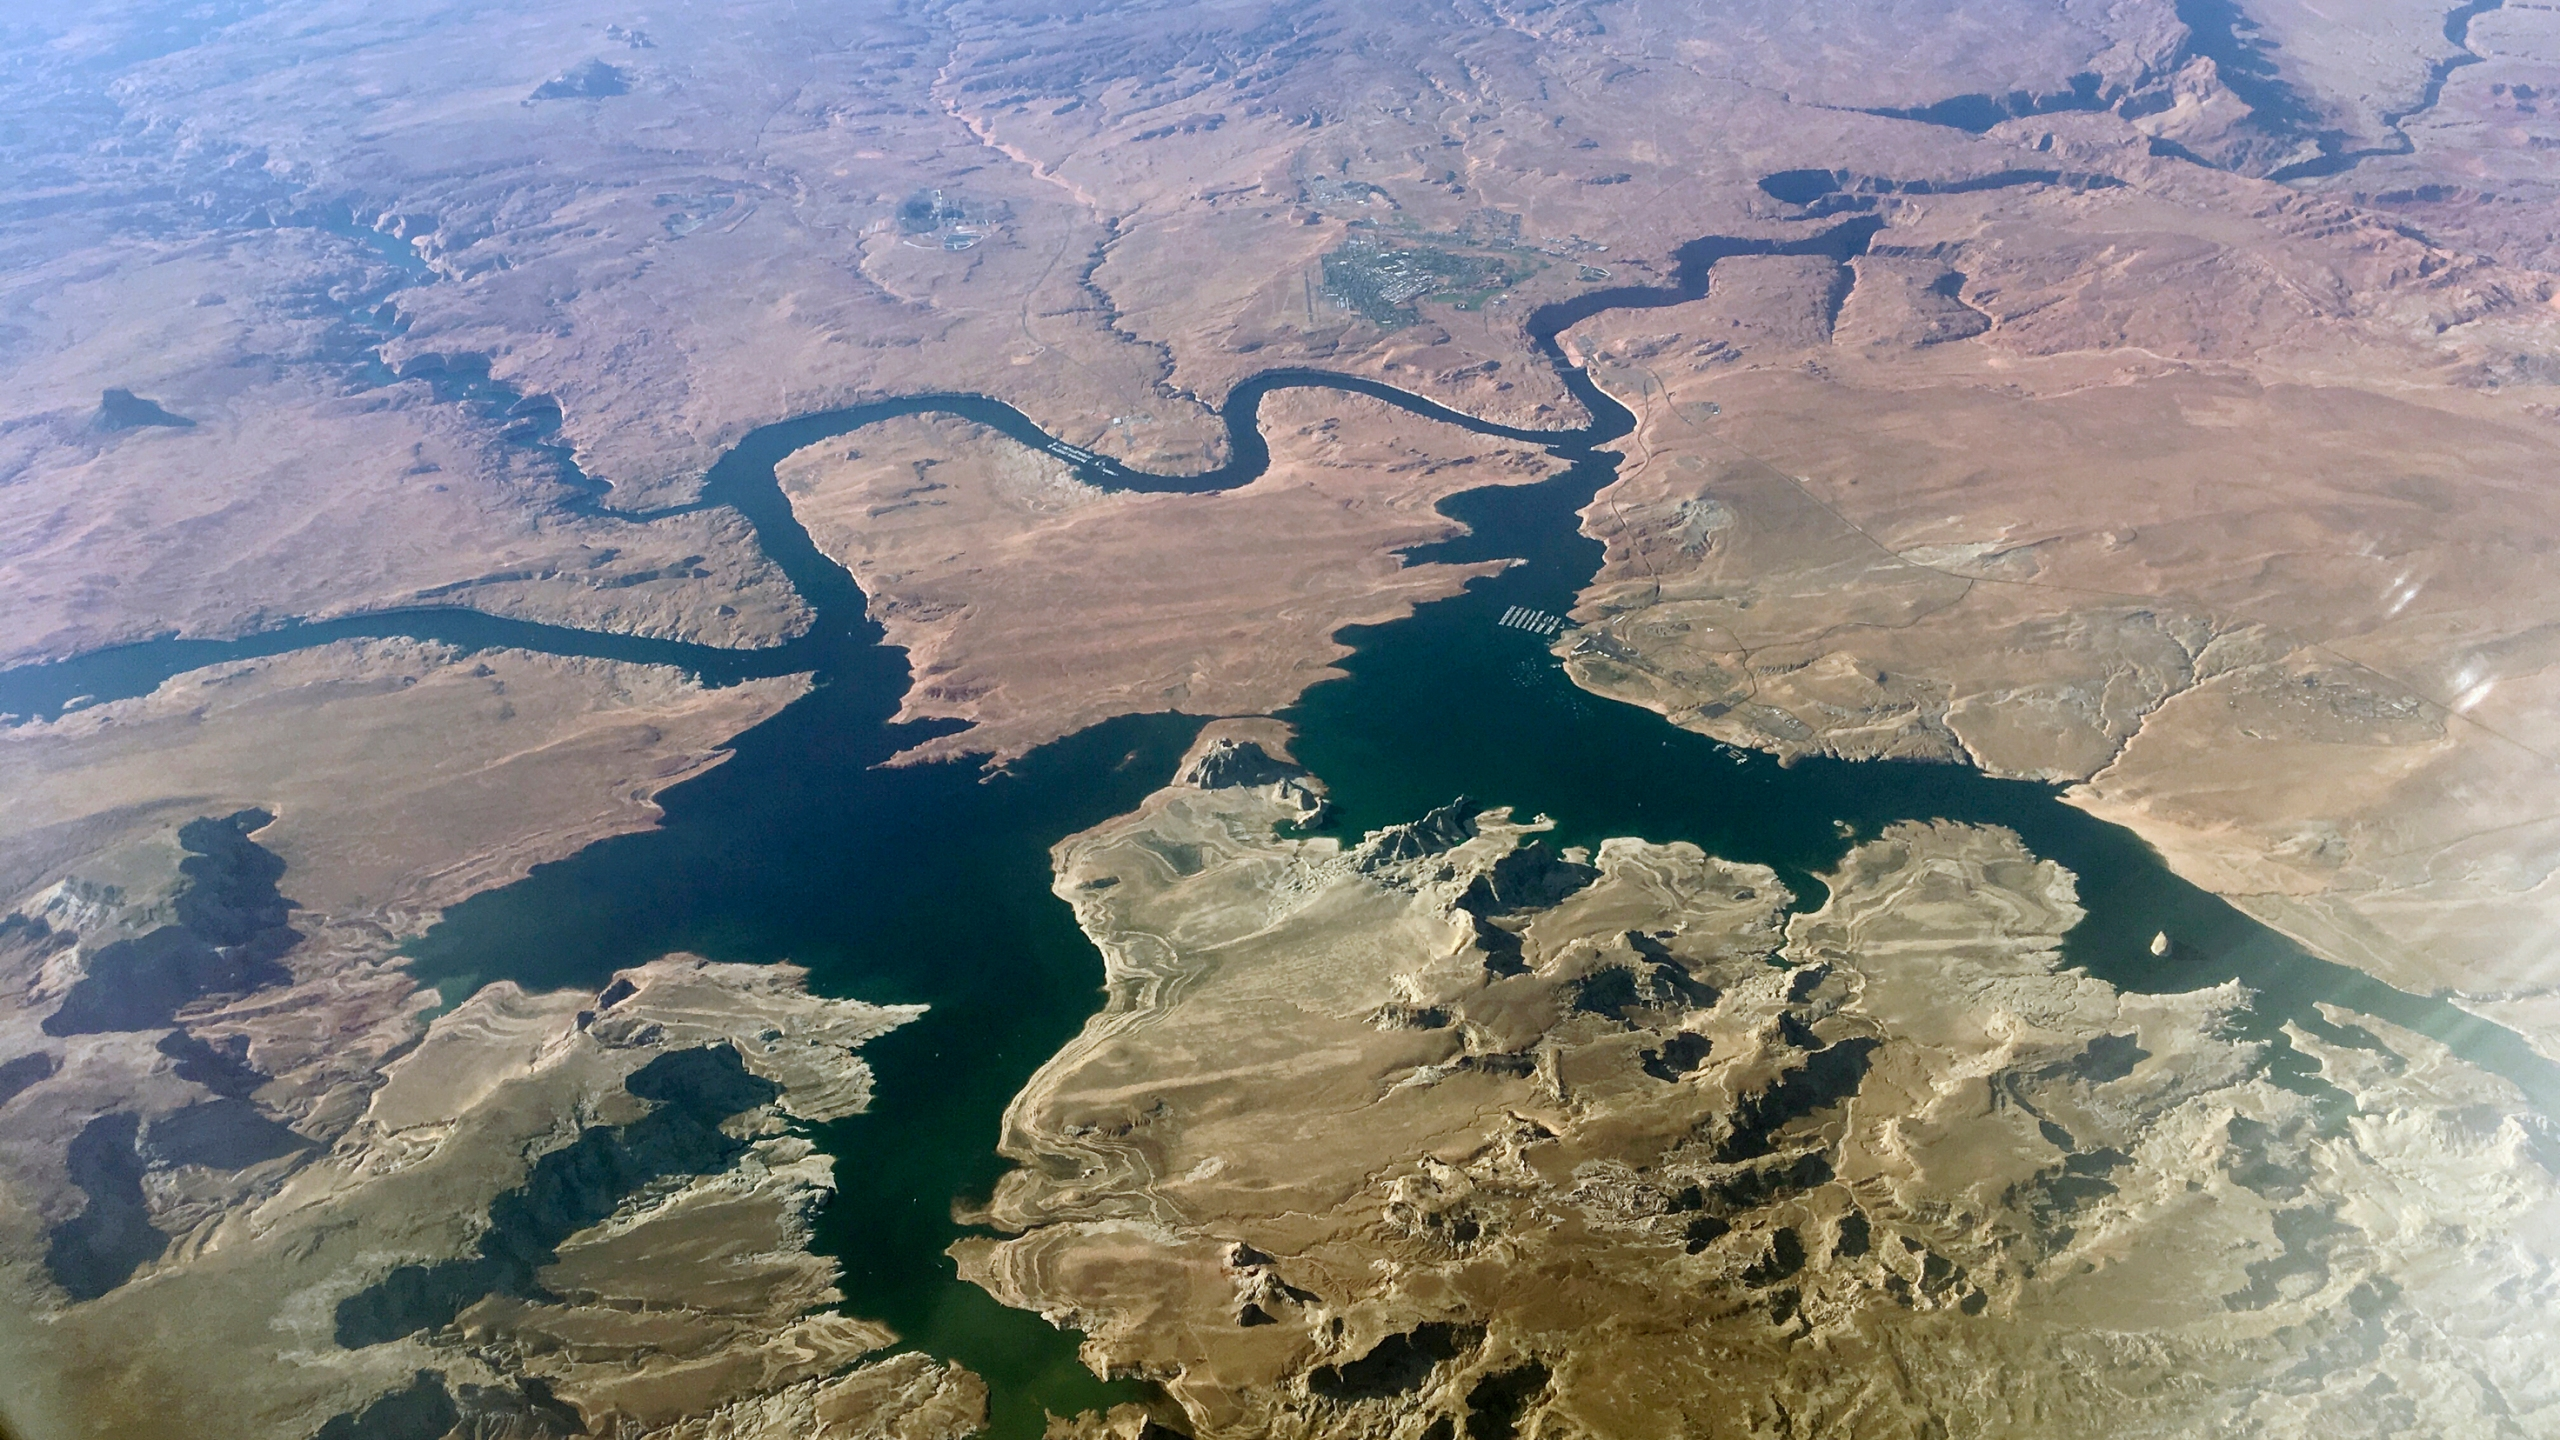 In this Sept. 11, 2019, file photo, is an aerial view of Lake Powell on the Colorado River along the Arizona-Utah border. (John Antczak/AP Photo)